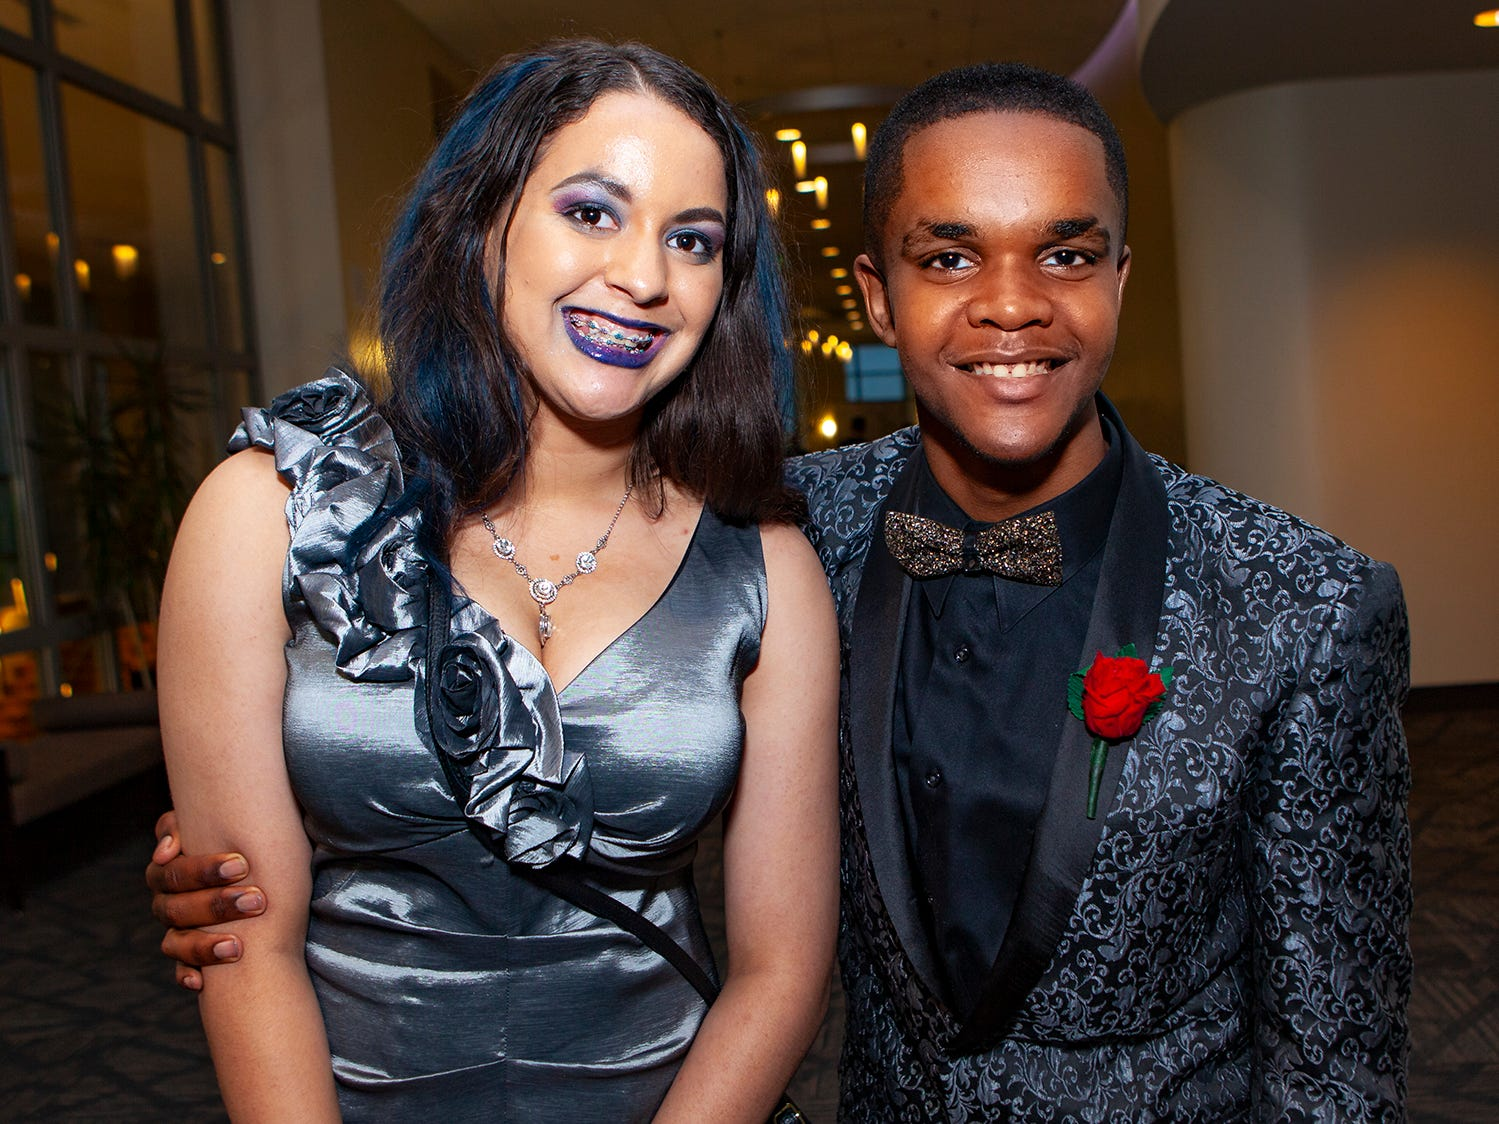 Sahara Canter and Anglo Carruthers at La Vergne High's prom, held Saturday, May 4, 2019 at MTSU's Student Union Building.